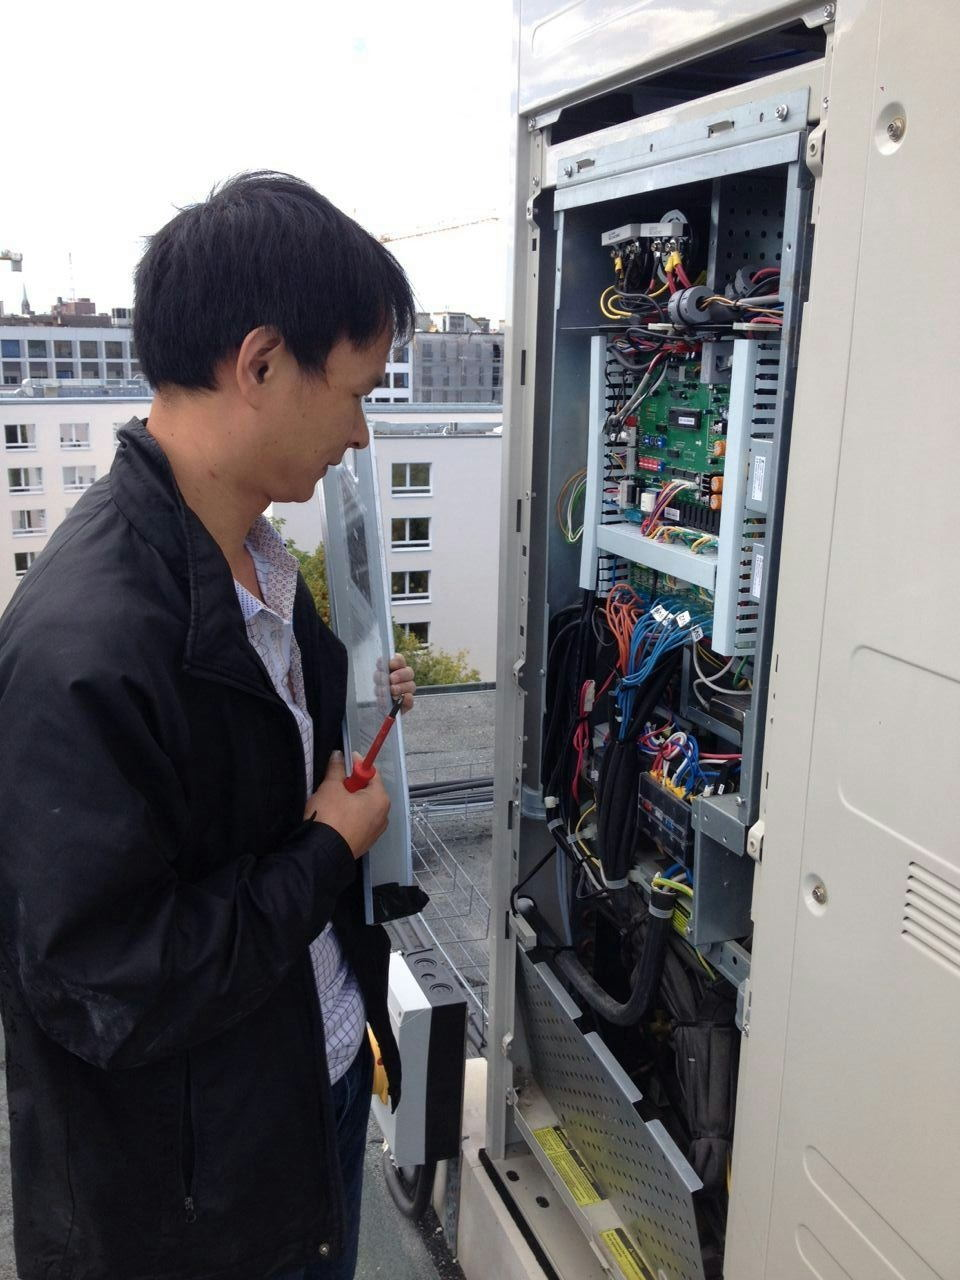 Orient HVAC Service Limited  send out engineer to support  German client's  installation and maintenance